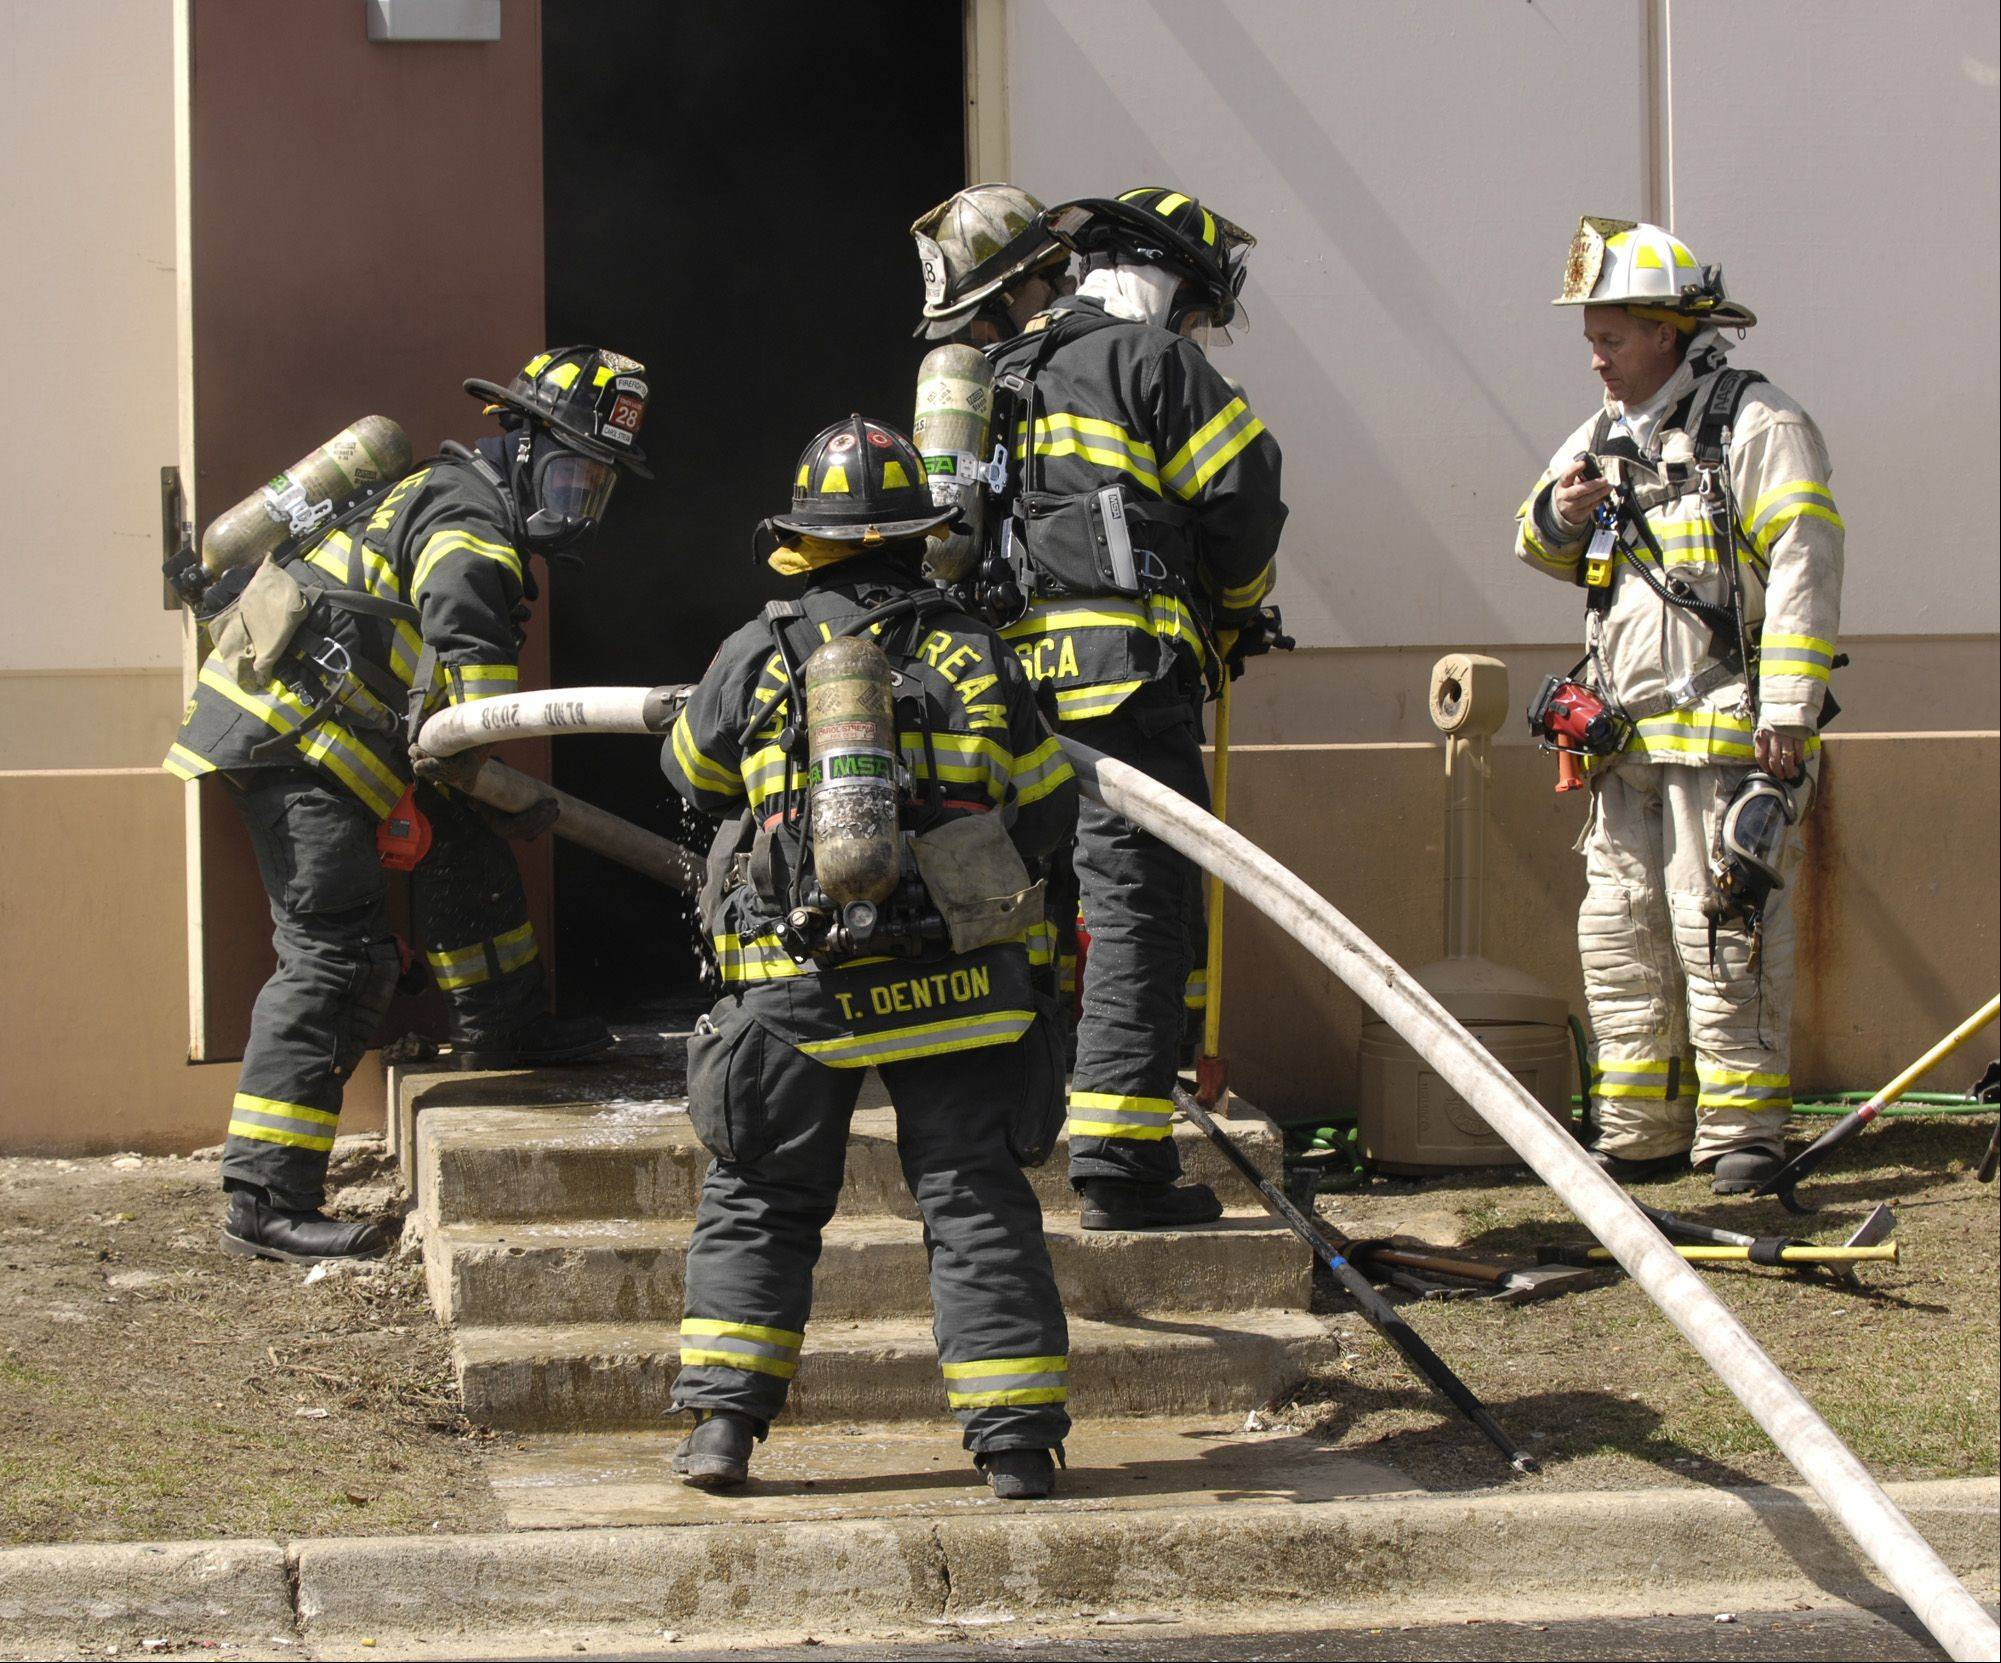 Firefighters pull a hose into the Northstar Metal Products Inc. building in Glendale Heights after an explosion sparked a fire and injured at least two people.